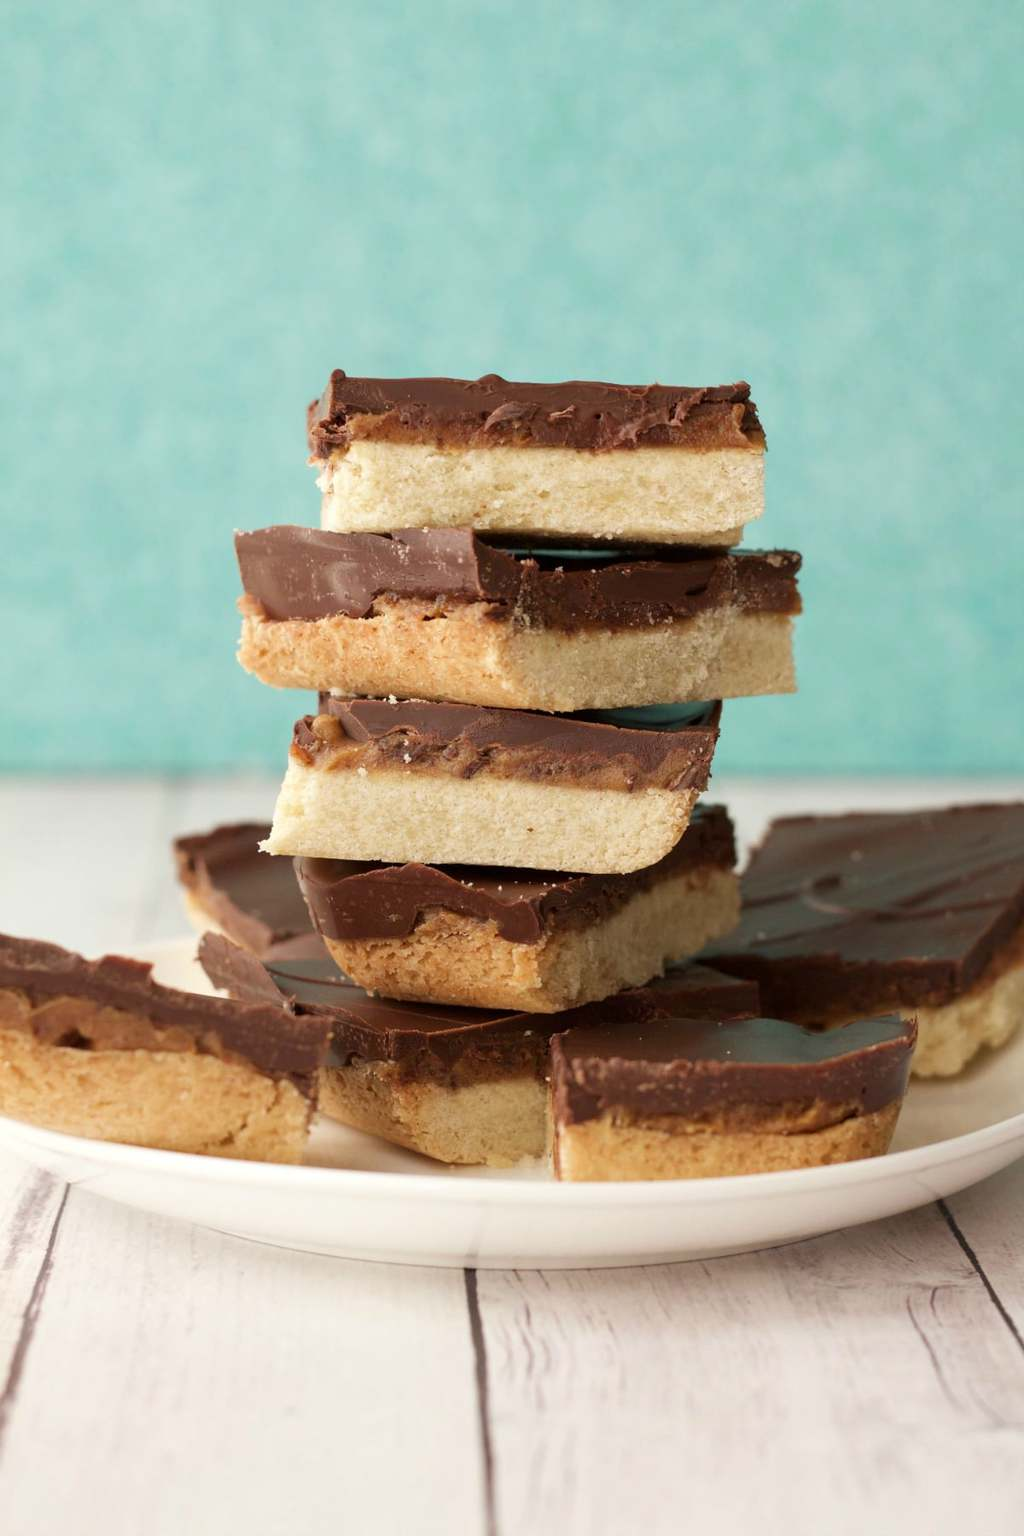 Vegan Homemade Twix Bars - a crunchy shortbread base, date caramel center and dark chocolate topping! #vegan #lovingitvegan #twixbars #twix #dessert